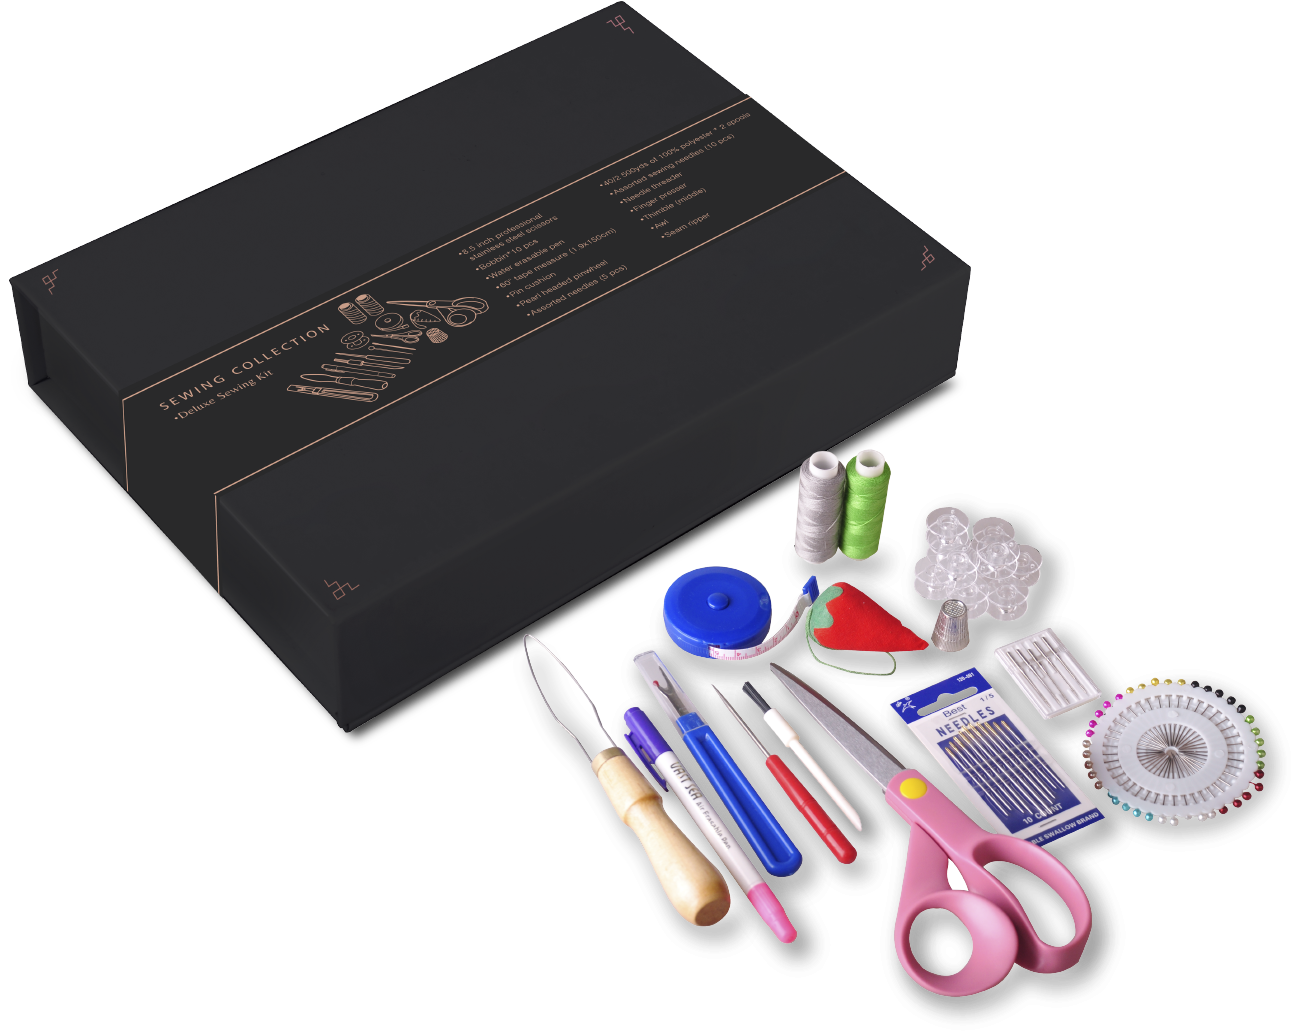 Deluxe-Sewing-Kit